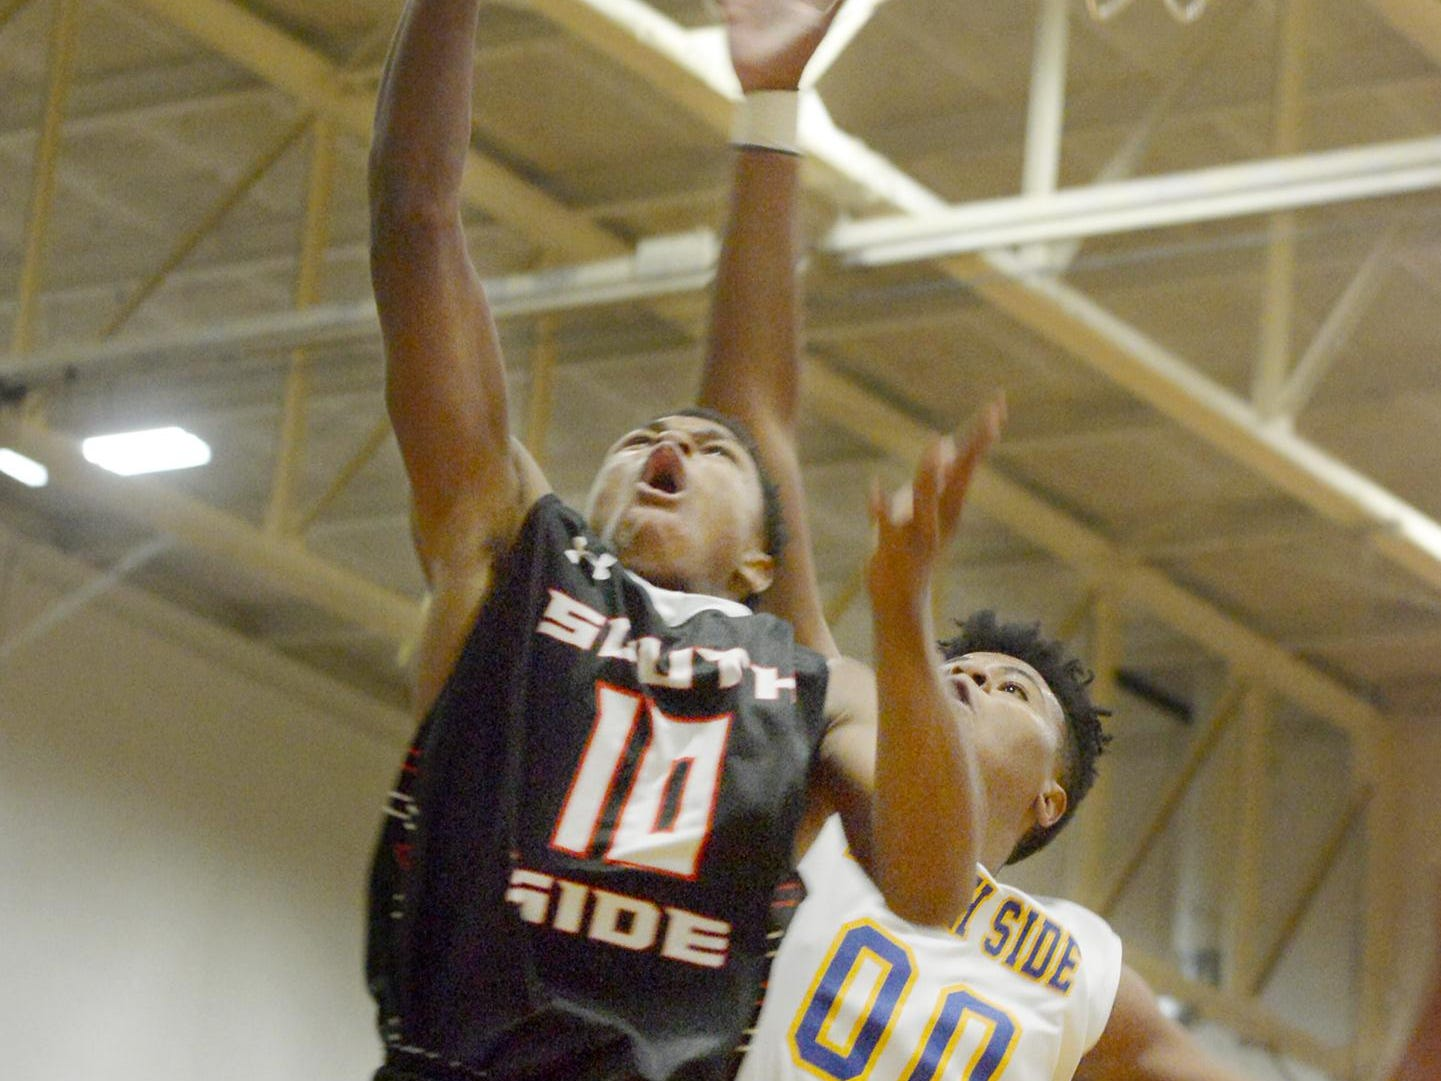 South Side's Keyon Jones goes up for a layup as North Side's Diego Womack attampts block his shot during their game, Tuesday evening at North Side. South Side defeated North Side, 87-52.